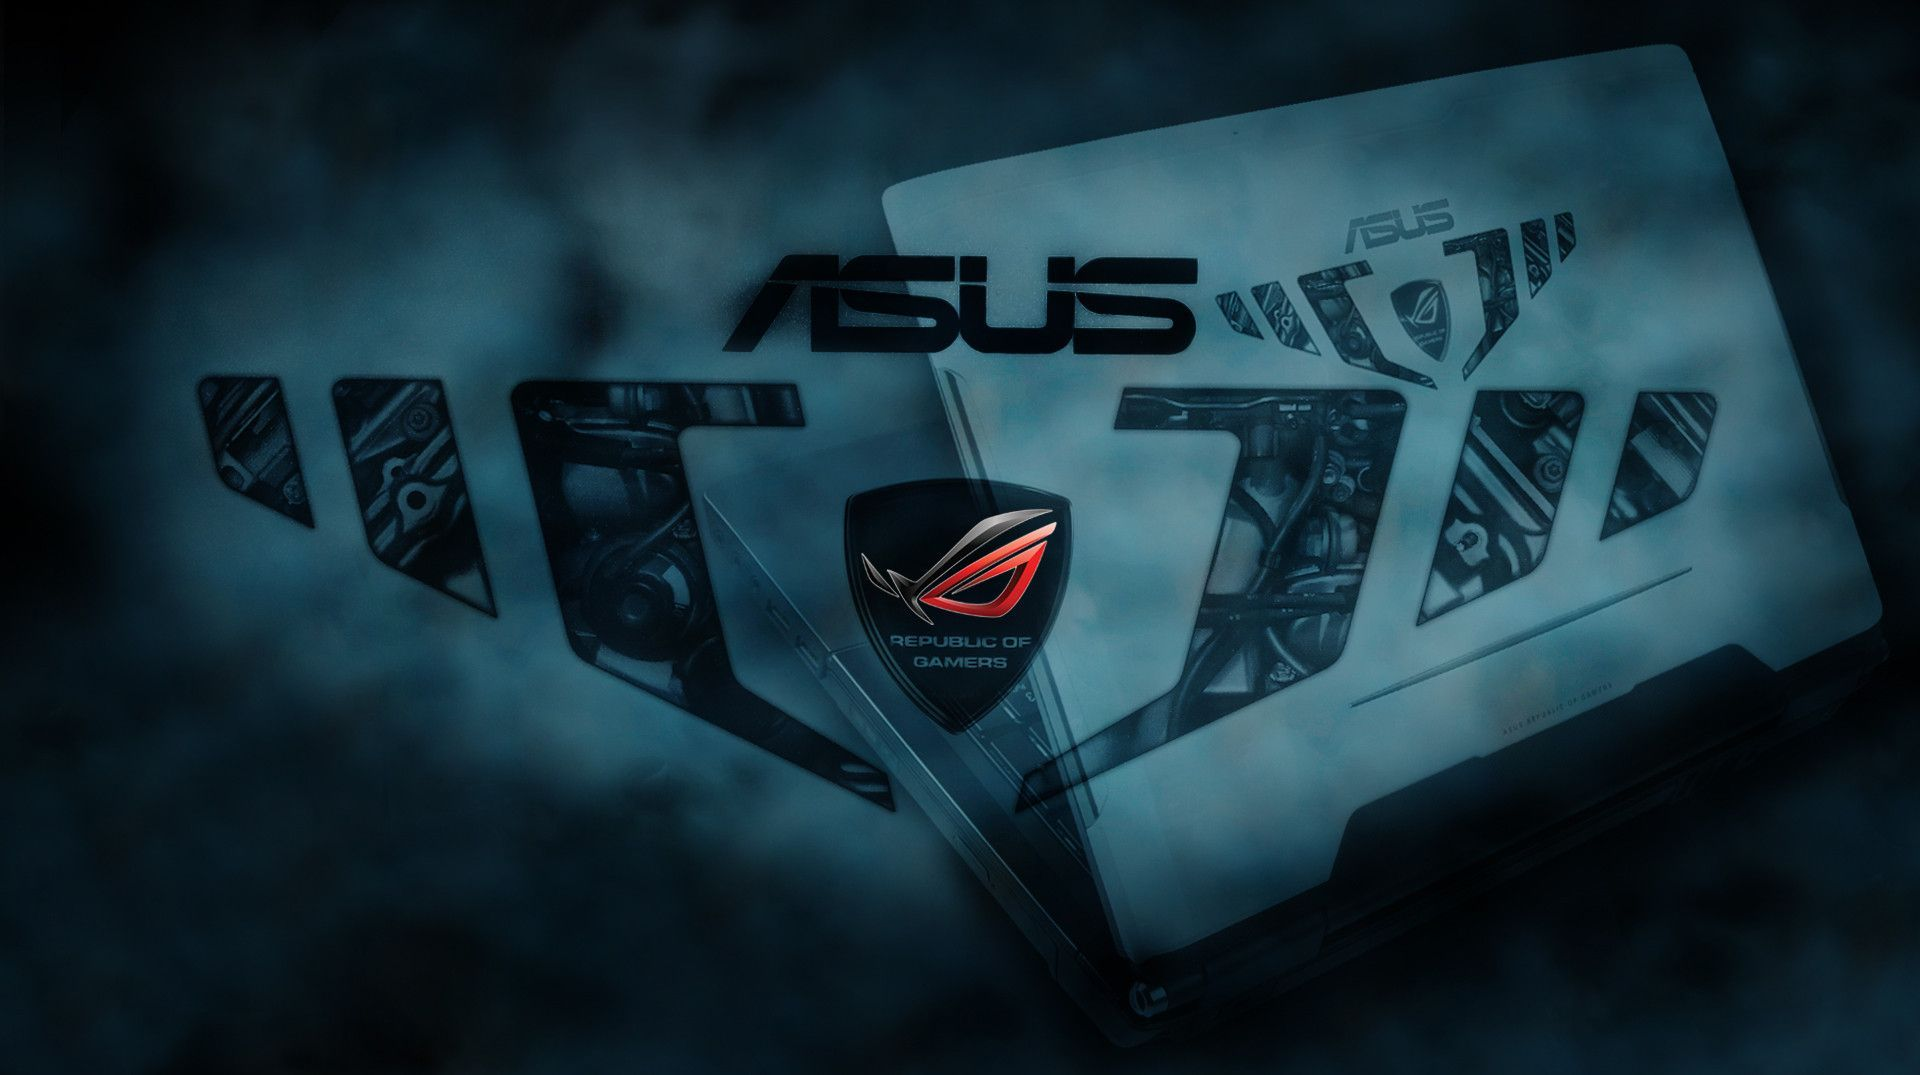 asus laptop wallpaper | hd wallpapers | pinterest | laptop wallpaper